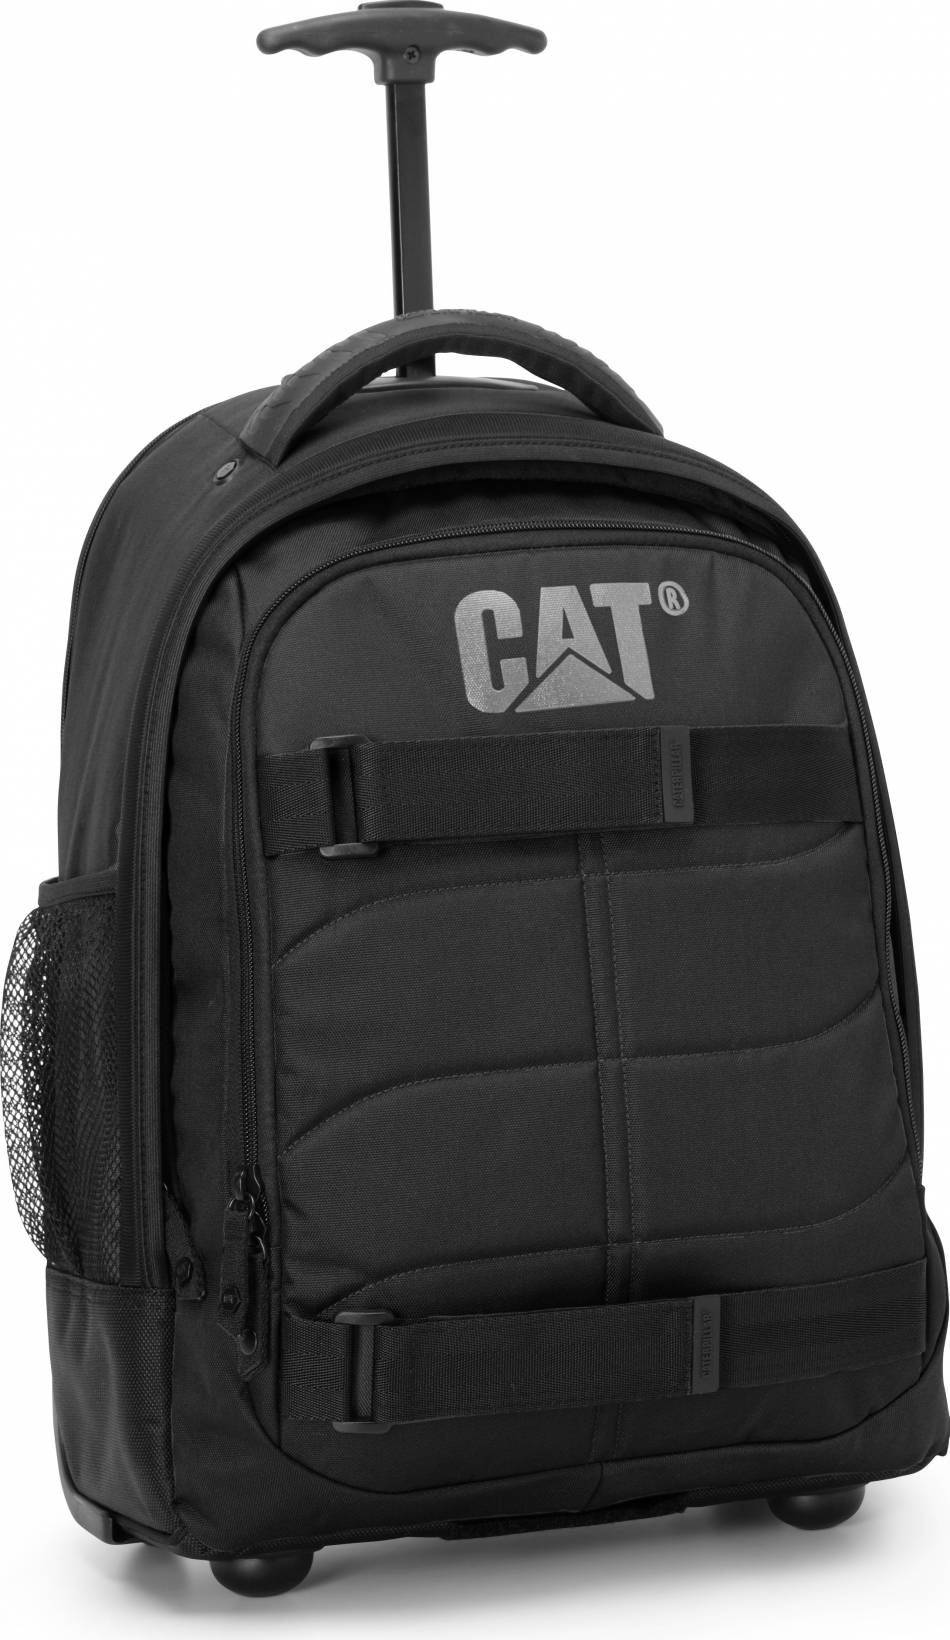 cat bags products. Black Bedroom Furniture Sets. Home Design Ideas